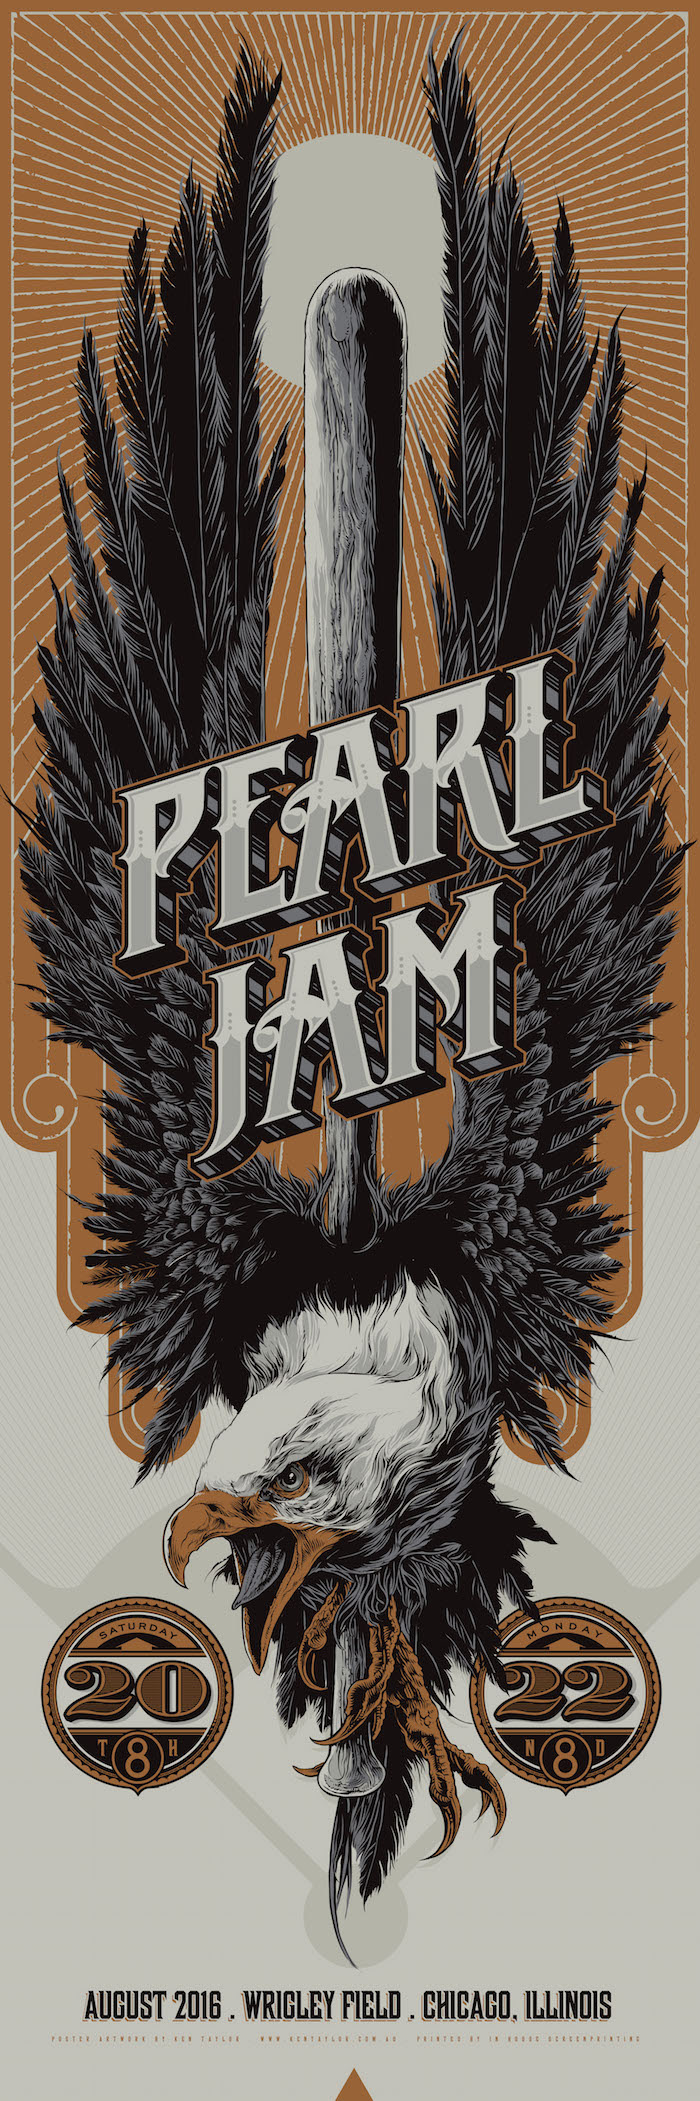 """Pearl Jam - Chicago, IL 2016"" by Ken Taylor.  12"" x 36"" Screenprint.  AP edition of 300.  $50 (variant)"